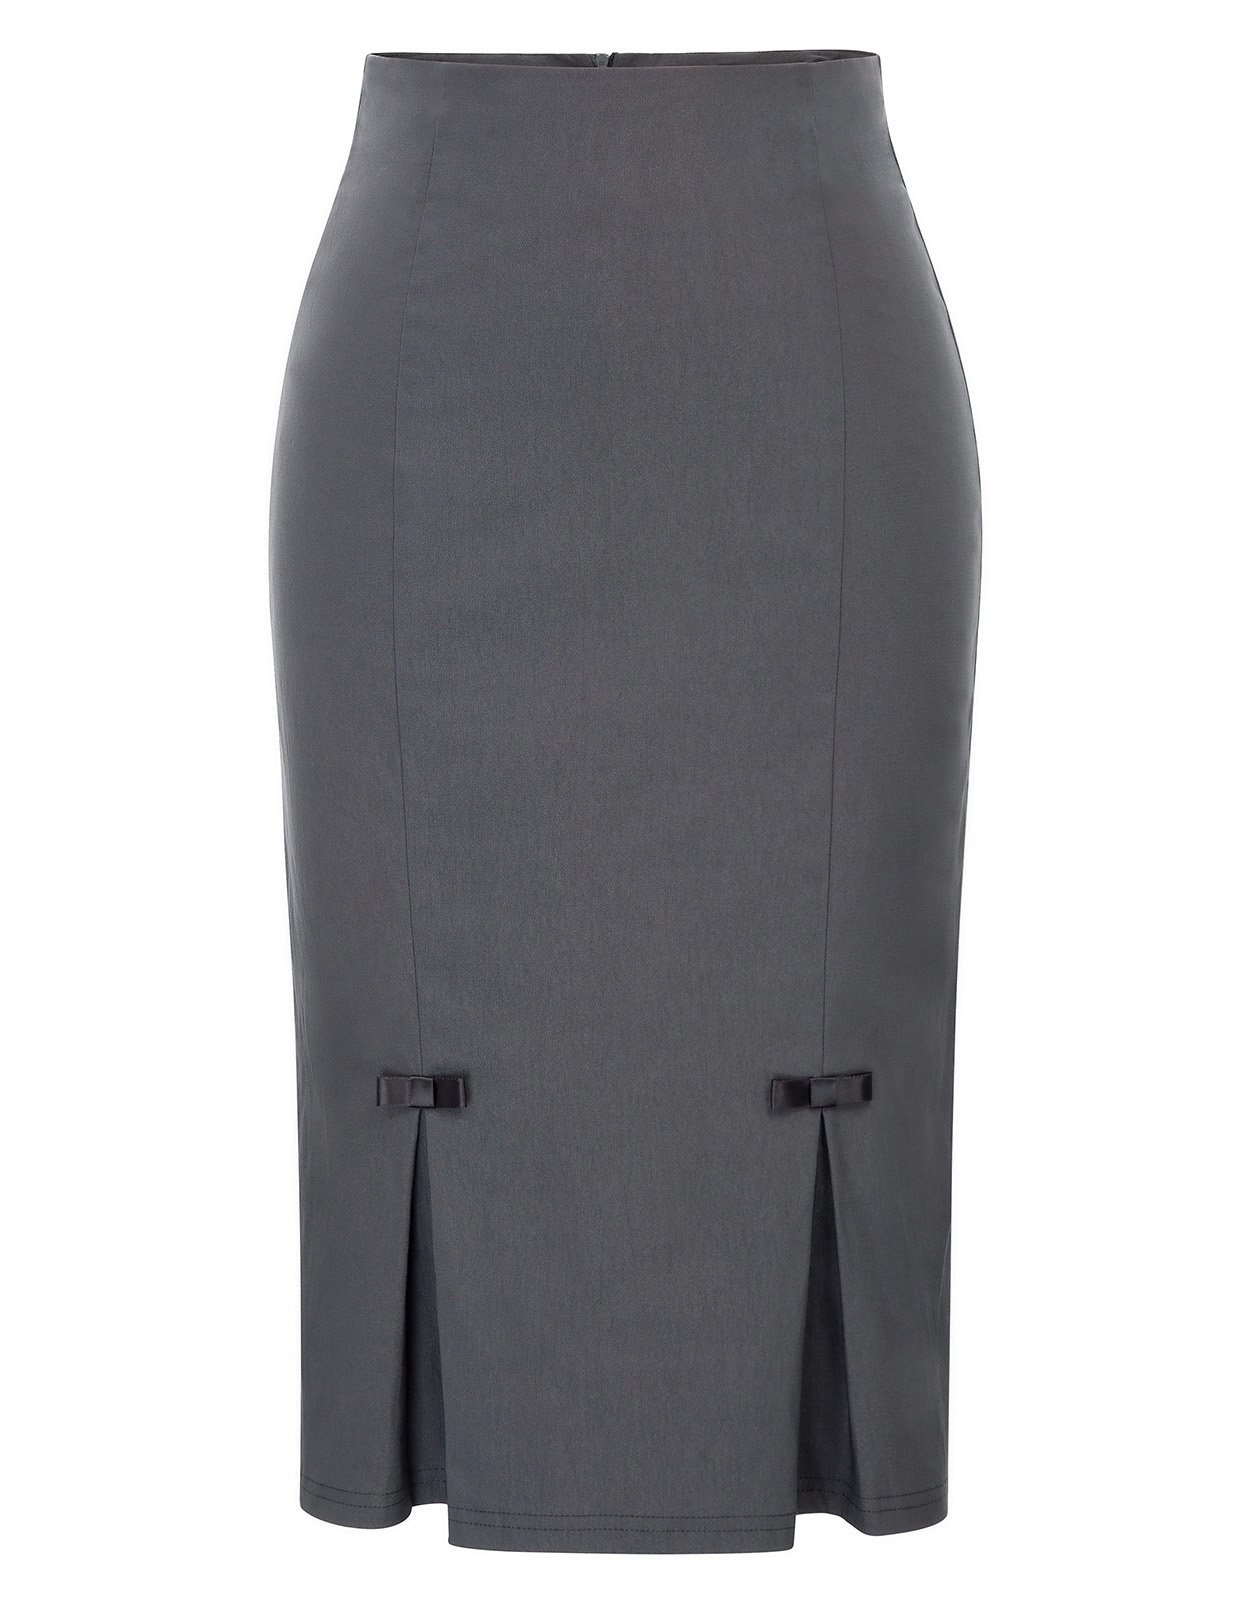 Belle Poque Gray Skirts Midi Wear to Work Skirts L BP587-2